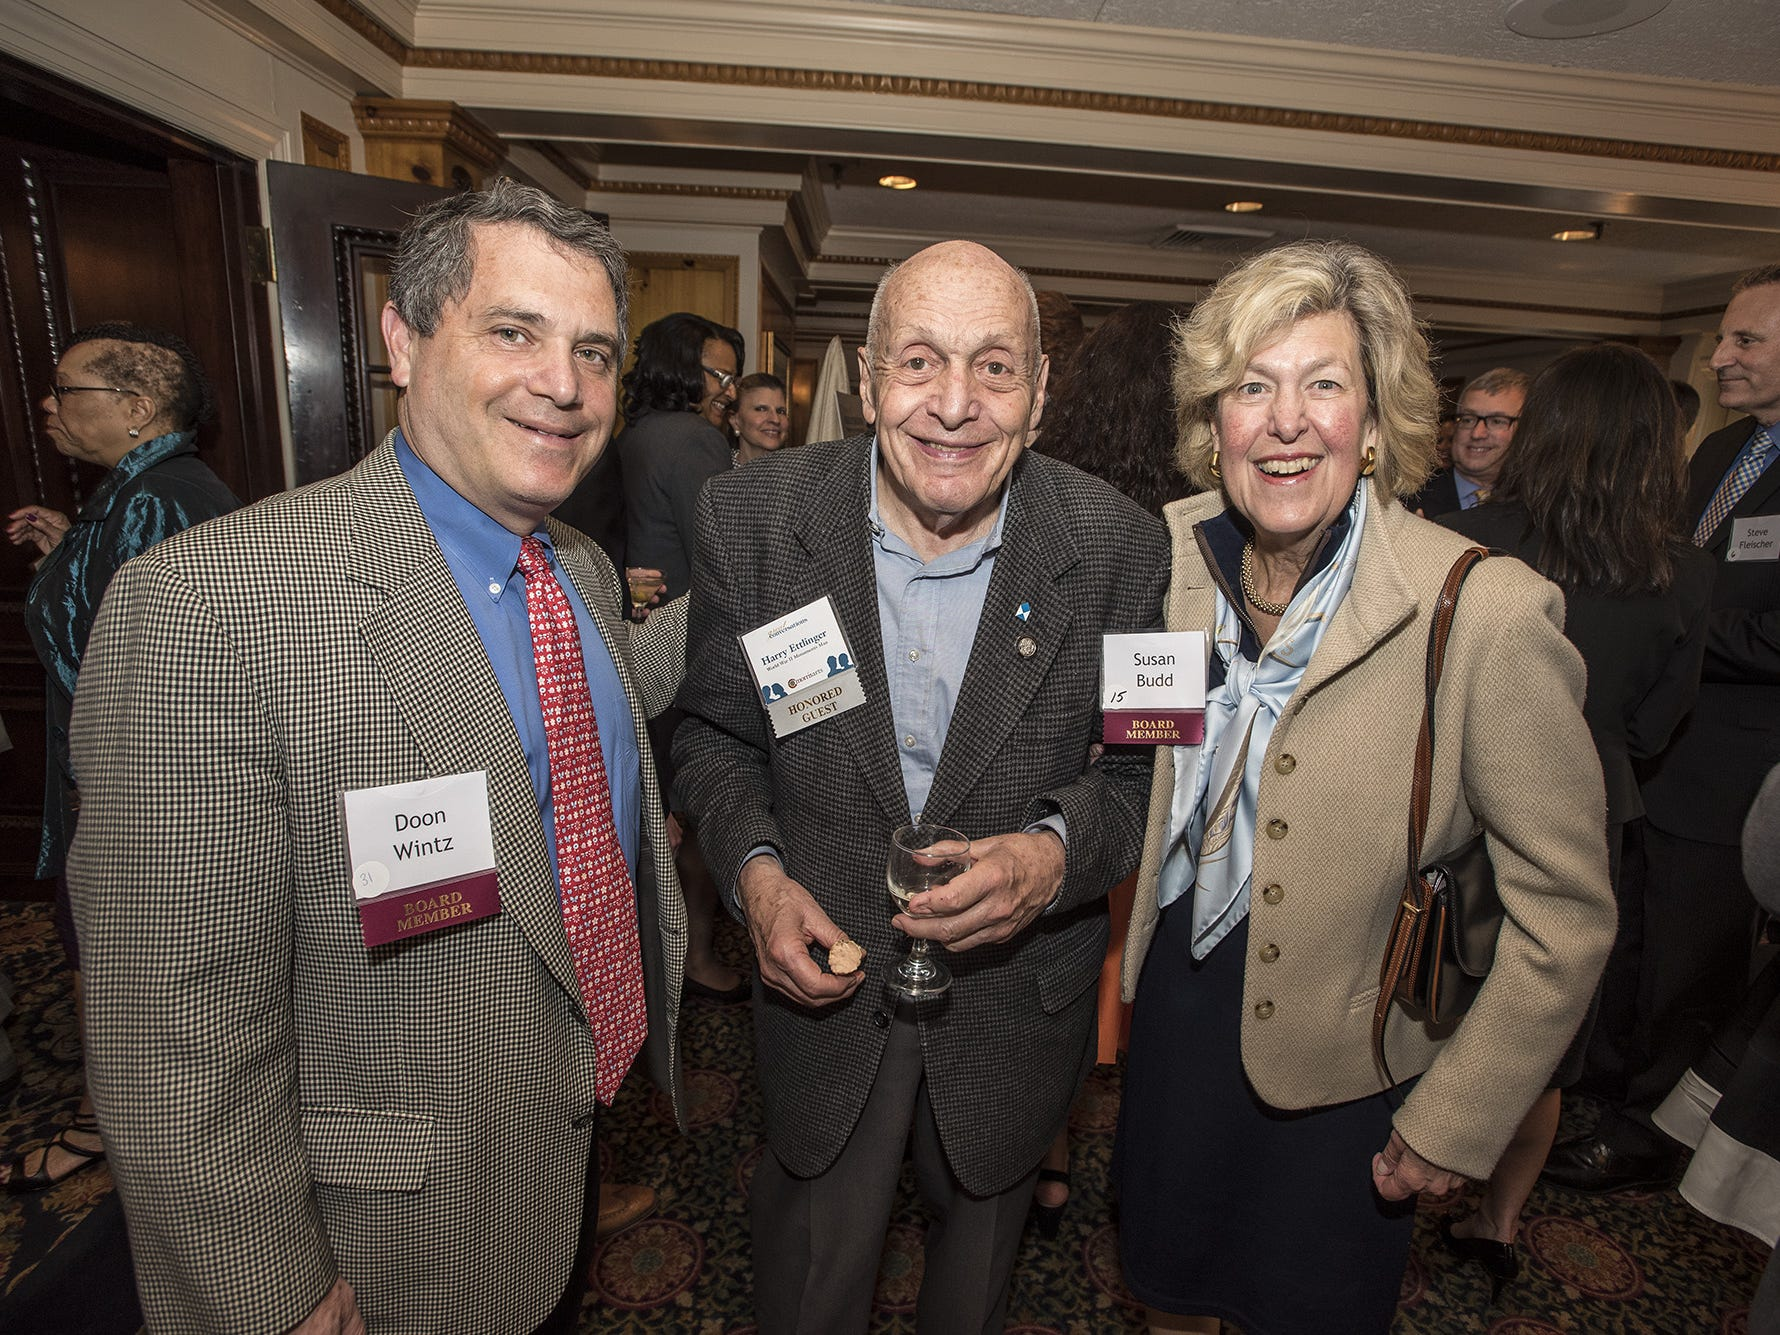 (L-R) Doon WIntz of Mendham Township, Monuments Man Harry Ettlinger of Rockaway Township and Susan Budd of Morris Township at the 7th Annual Morris Arts Great Conversations at the Madison Hotel in Morristown, April 30, 2015.  Photo by Warren Westura for the Daily Record.